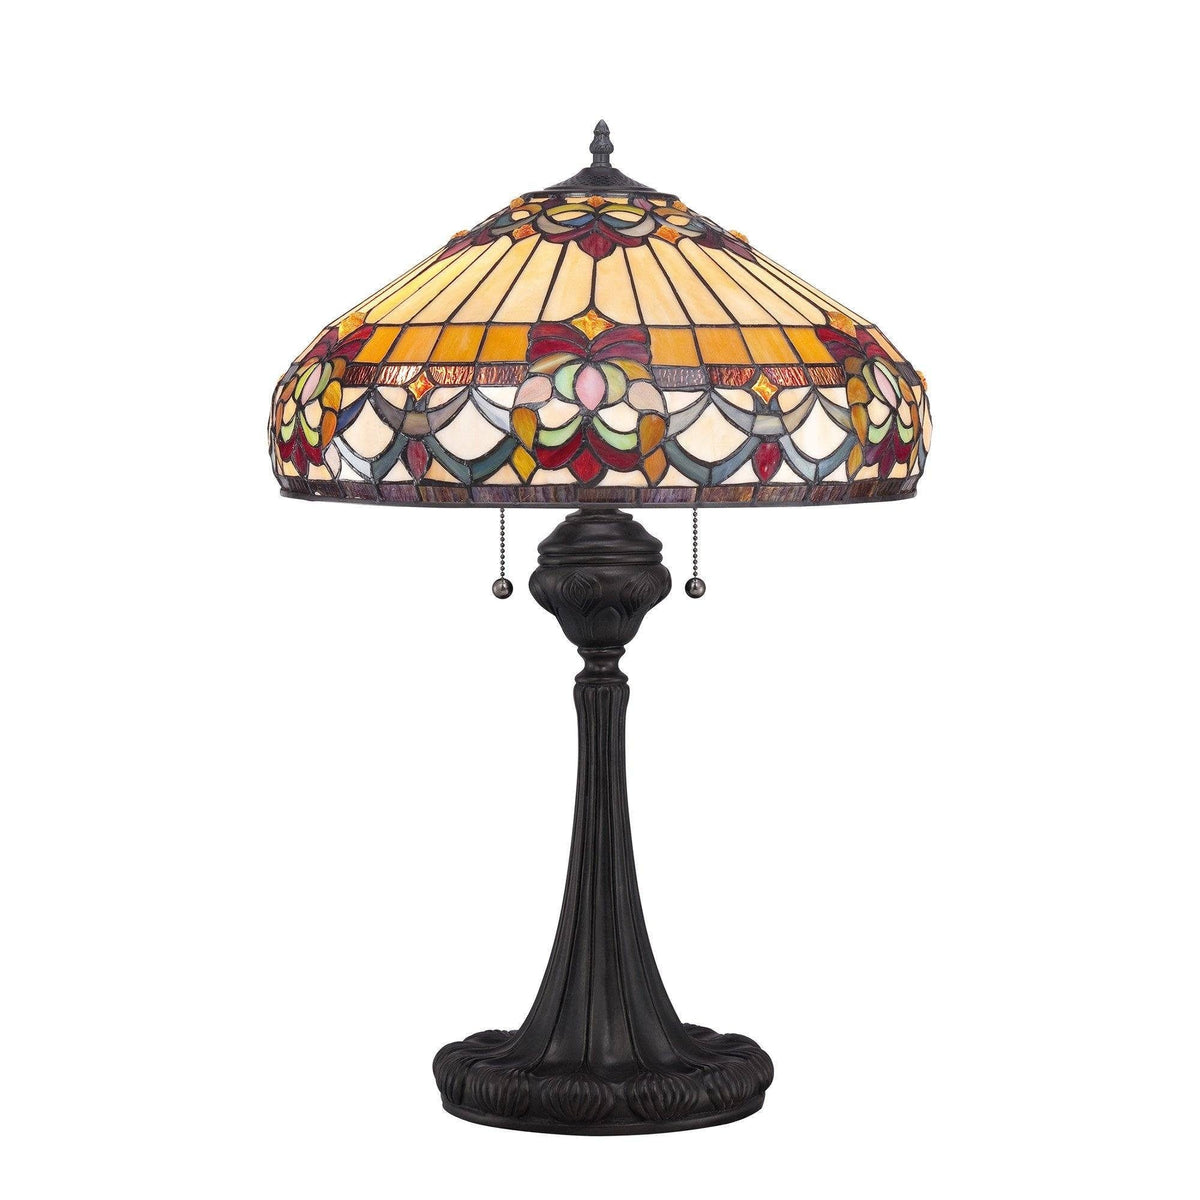 Large Tiffany Lamps - Quoizel Large Tiffany Belle Fleur Table Lamp QZ/BELLEFLEUR/TL